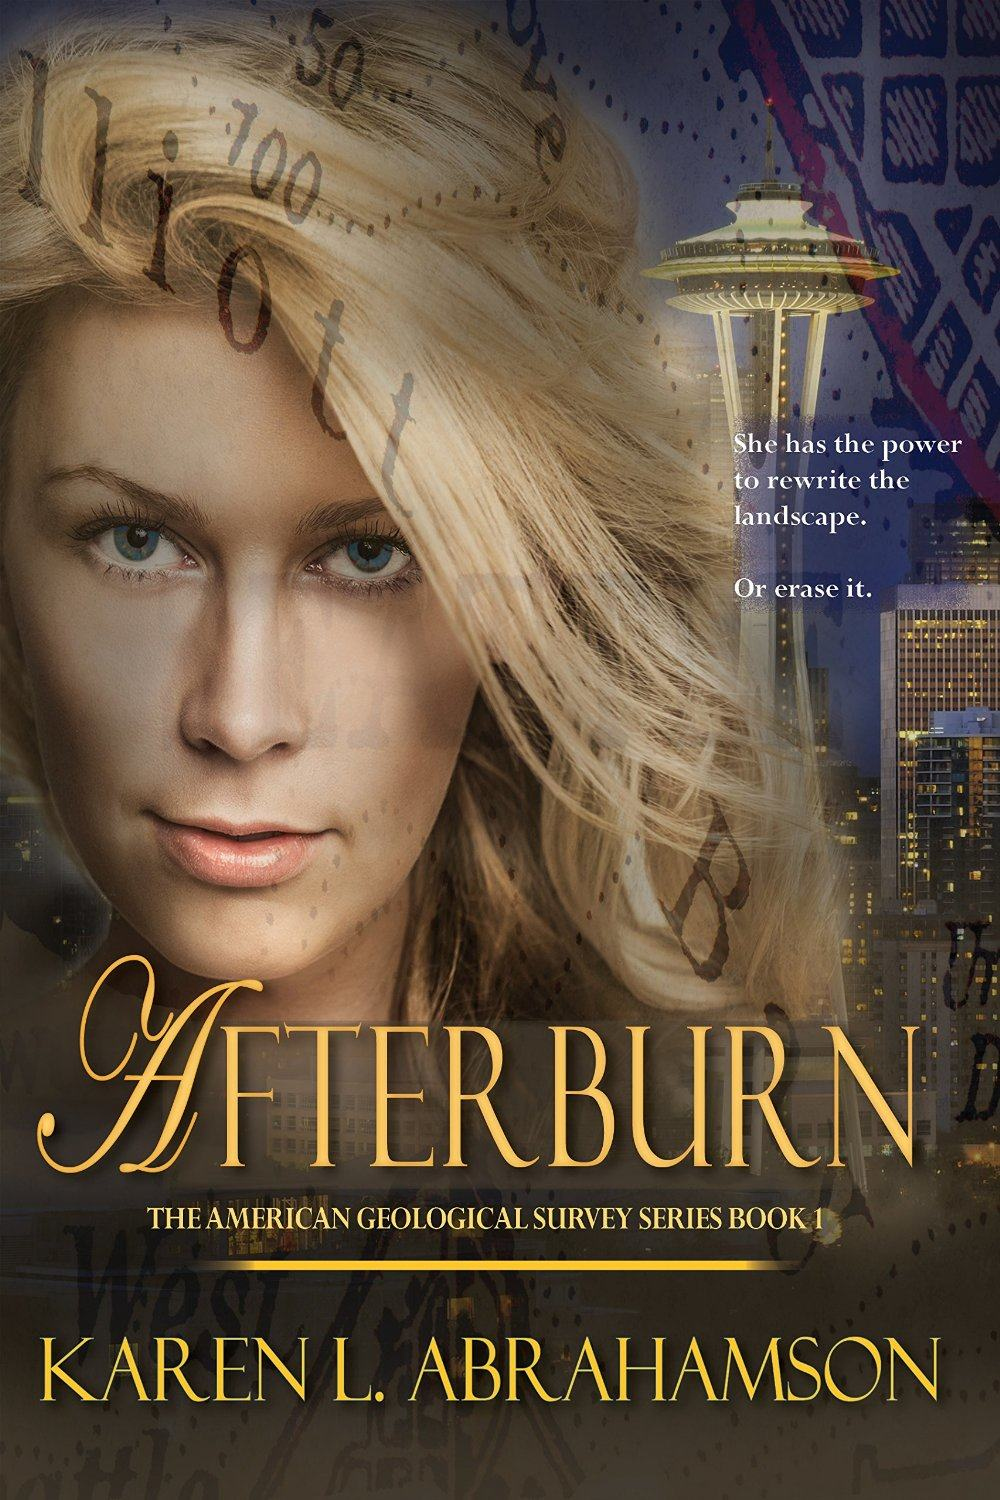 Afterburn: The American Geological Survey, Book 1 by Karen L. Abrahamson